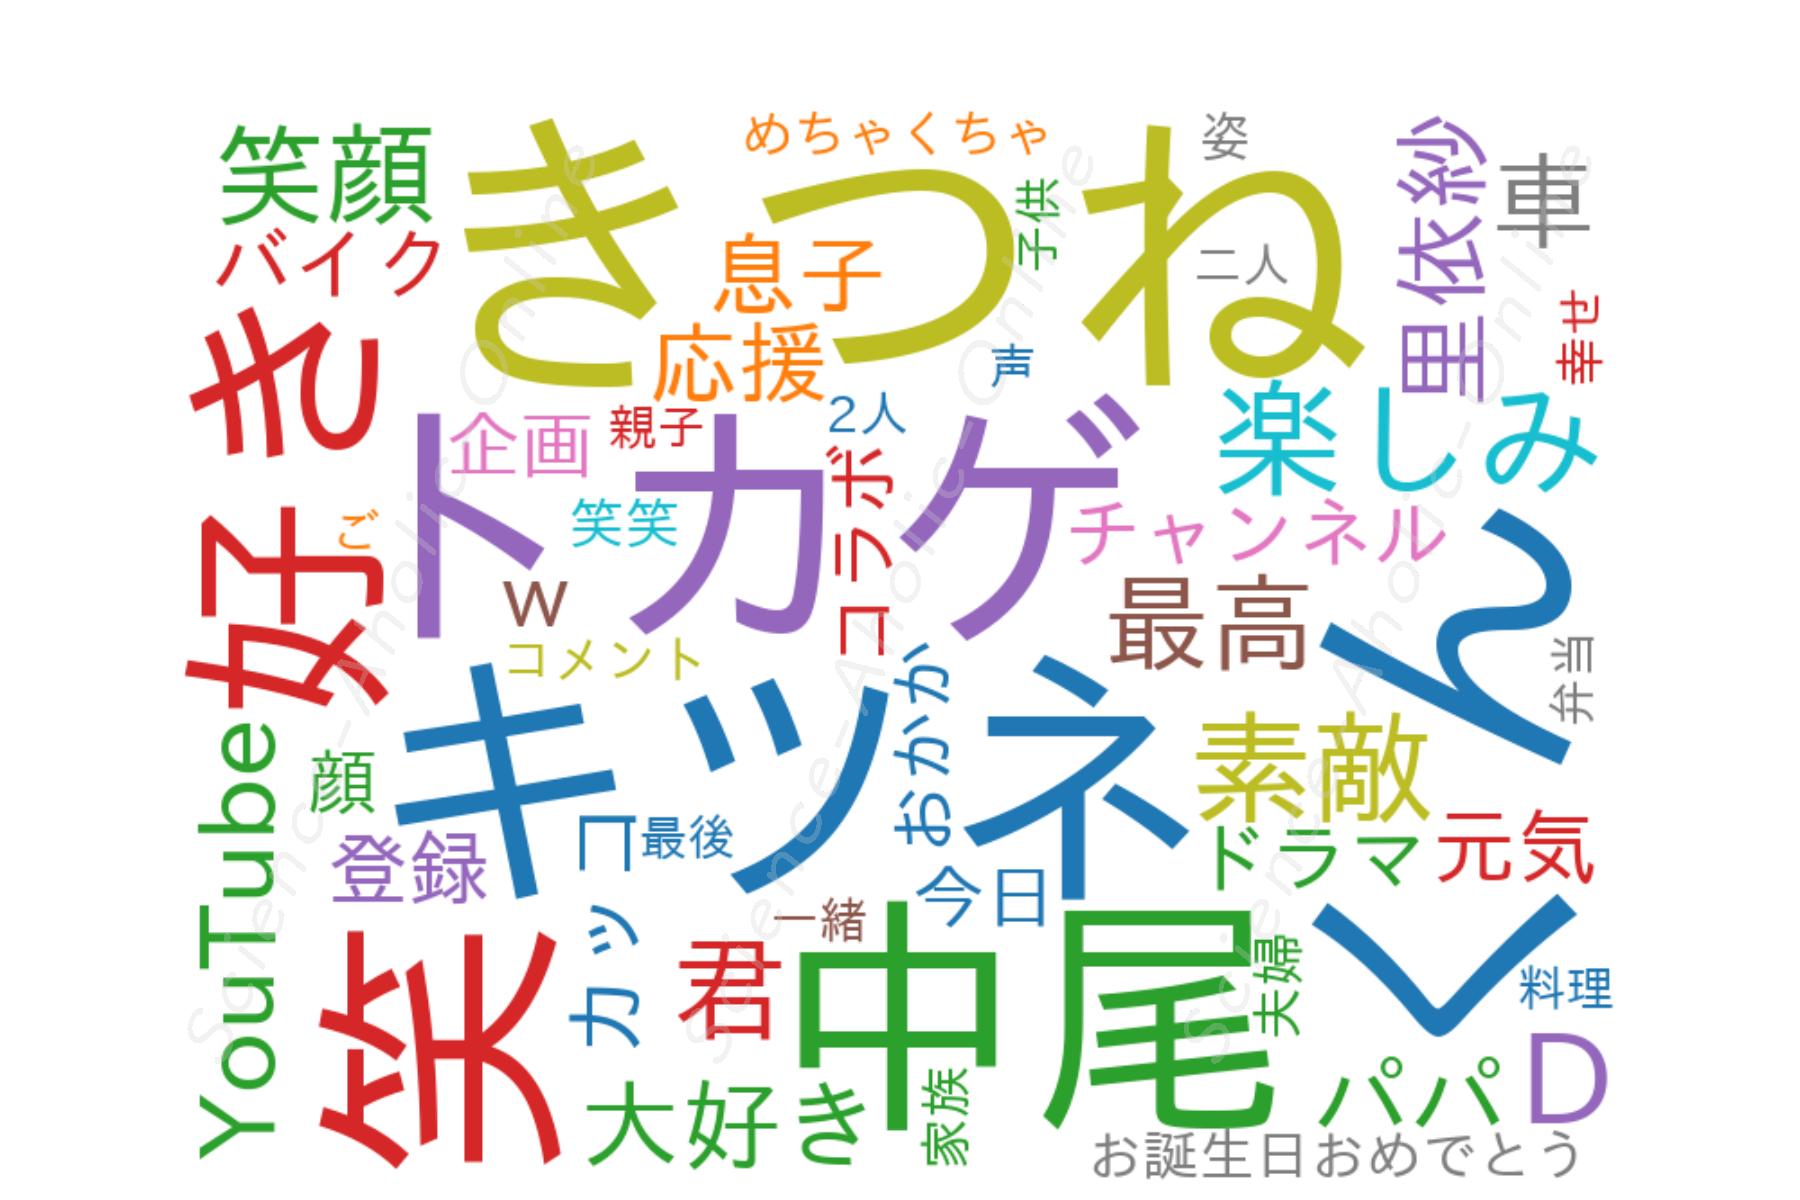 https://science-aholic-online.com/wp-content/uploads/2020/08/wordcloud_中尾明慶のきつねさーん.png